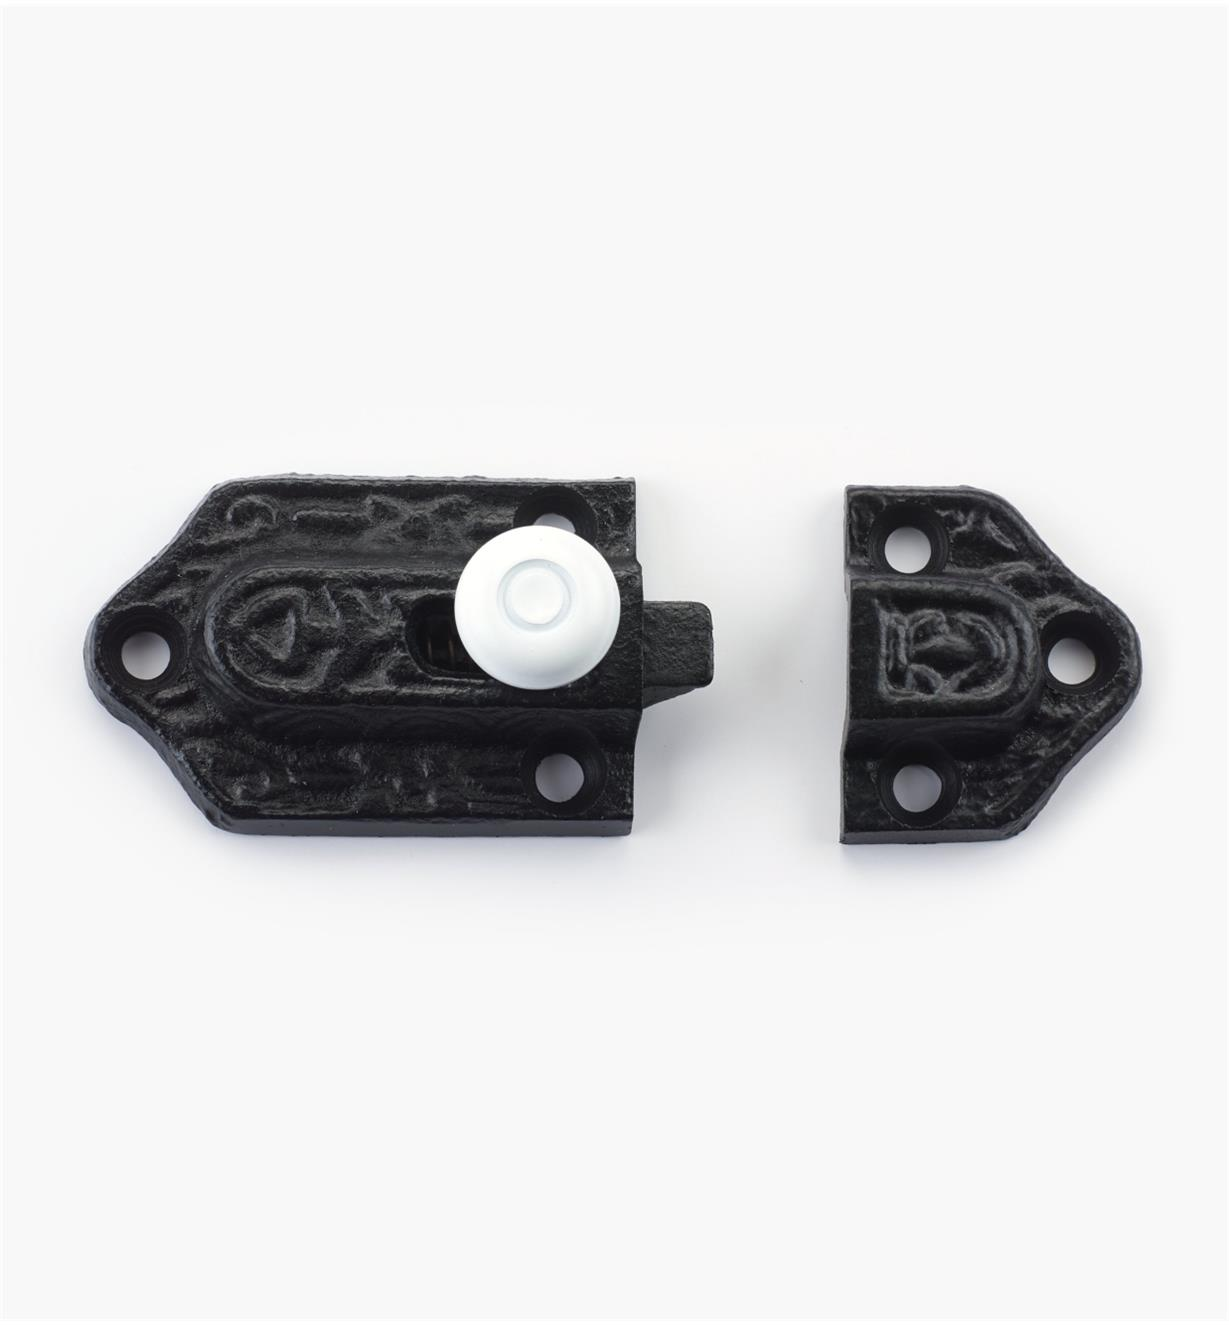 00W1030 - Cast-Iron Surface Latch